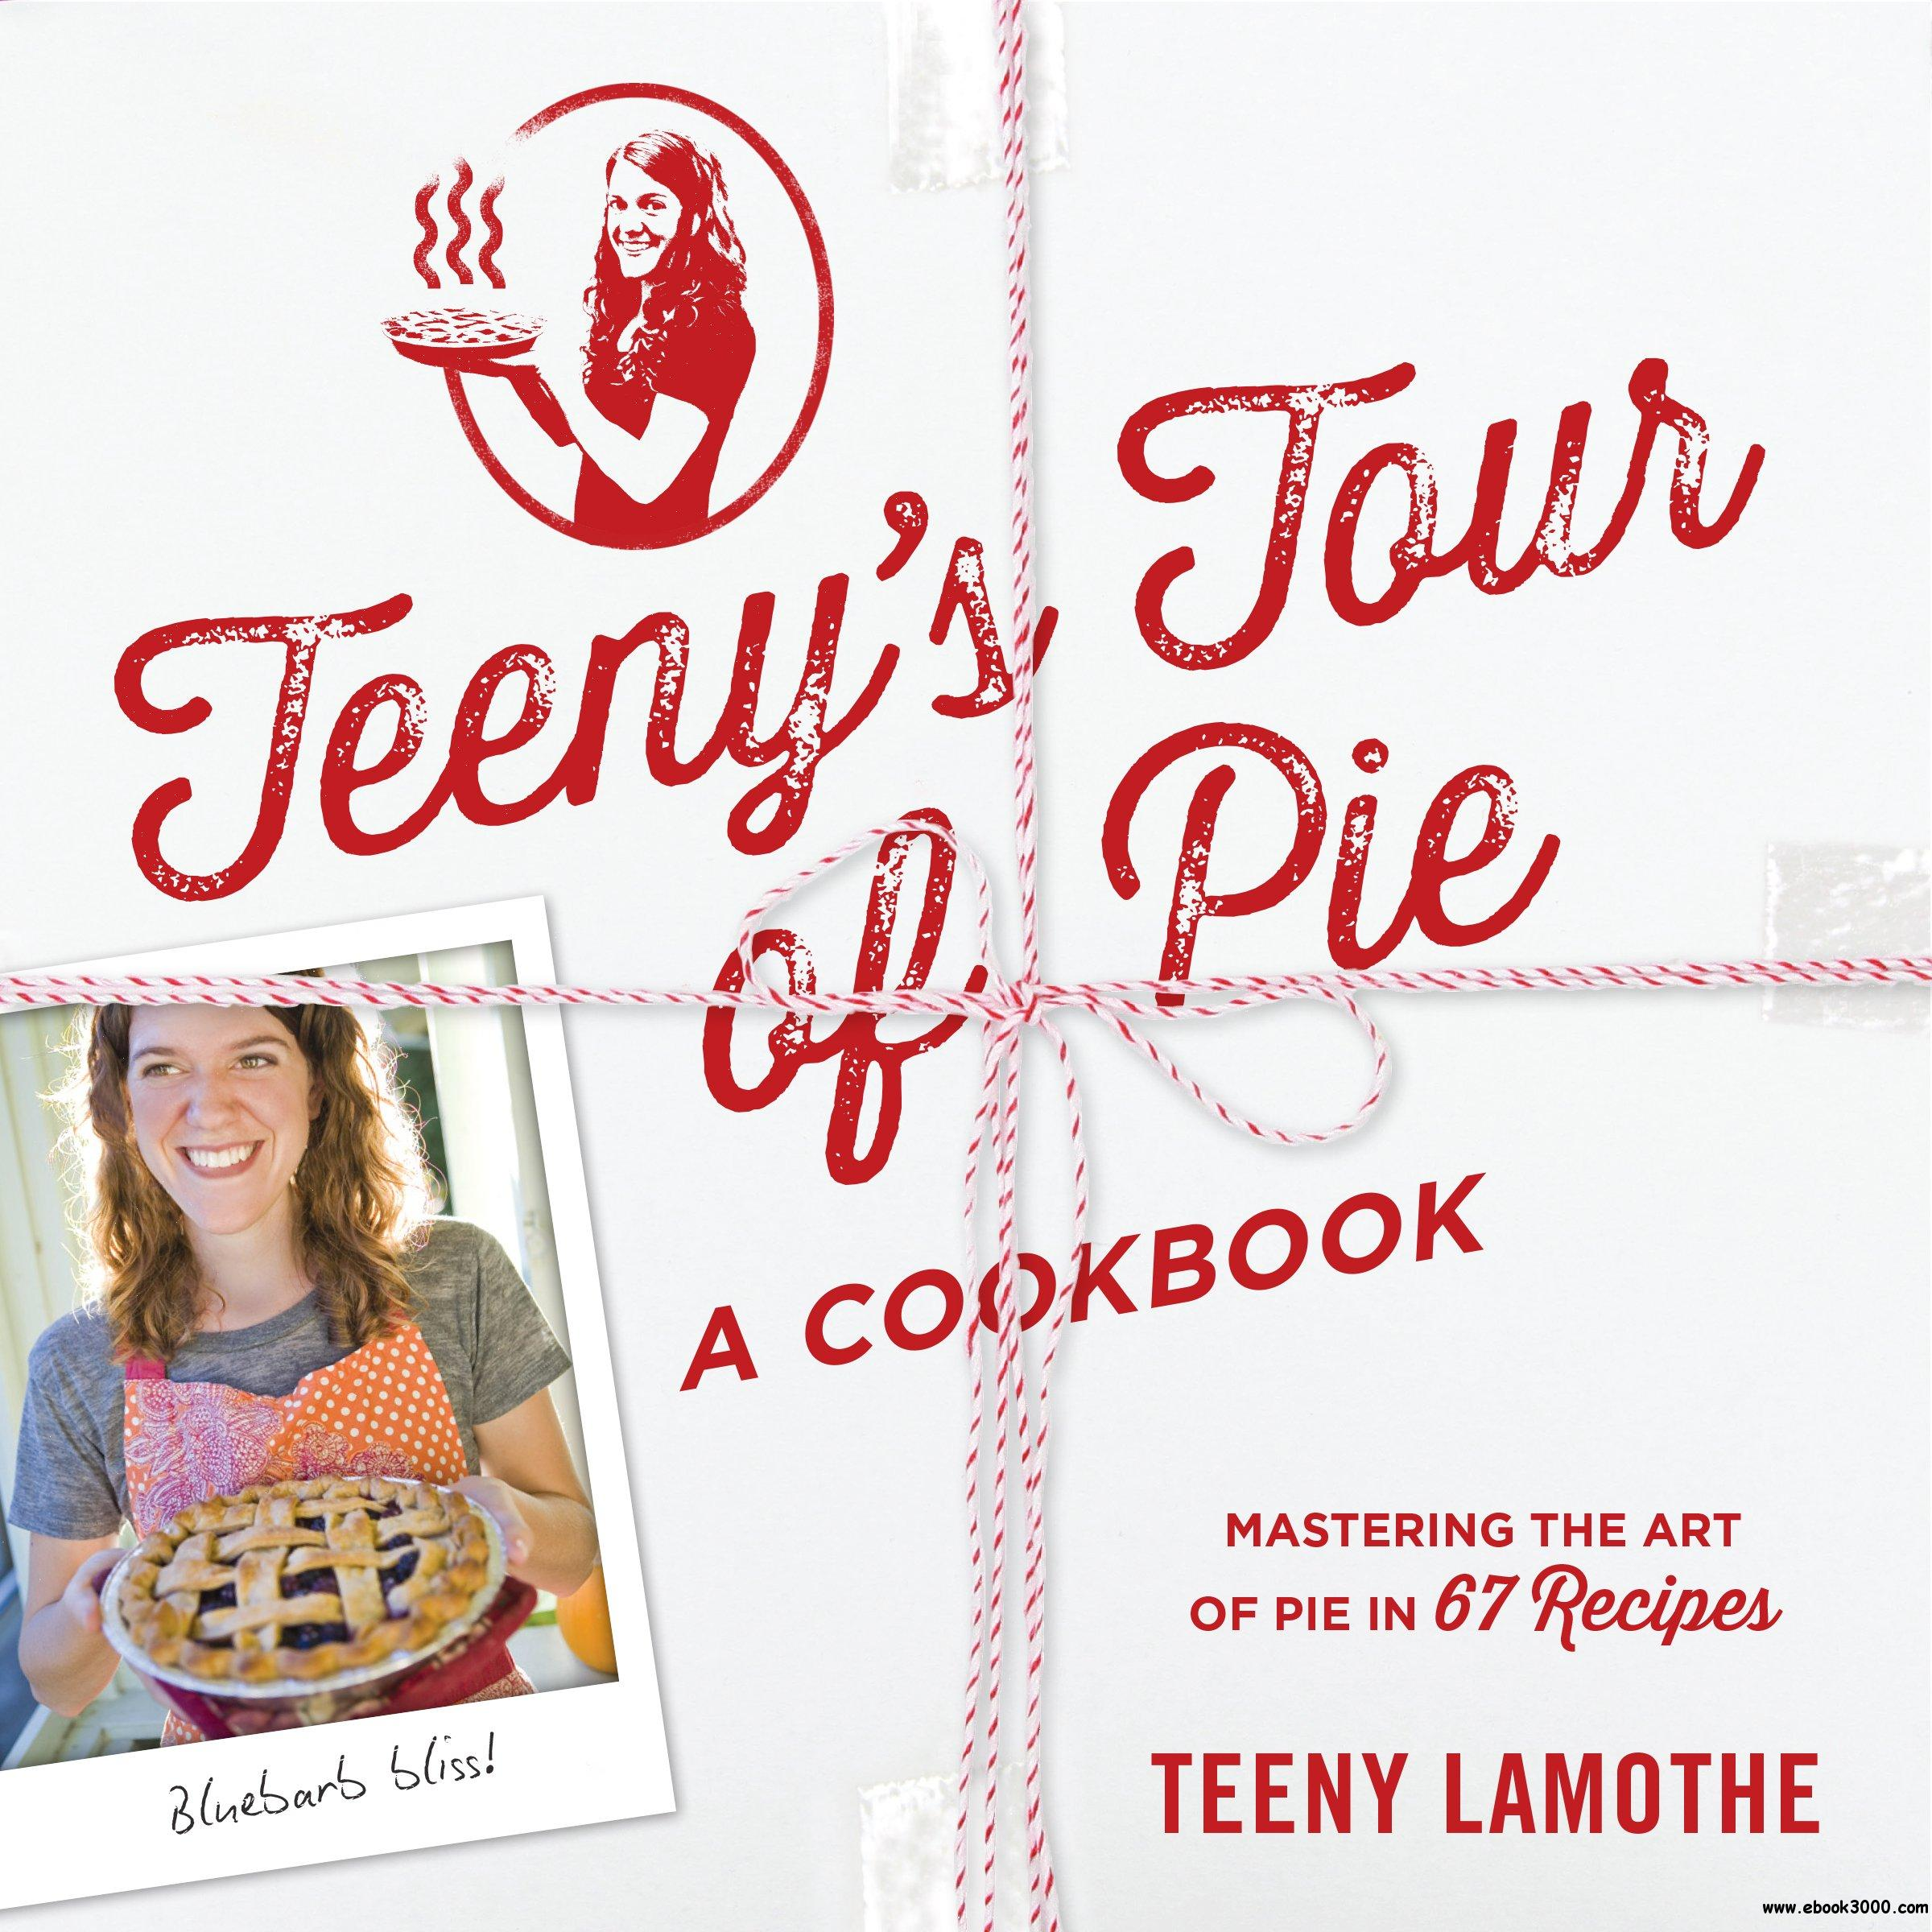 Teeny's Tour of Pie: A Cookbook free download